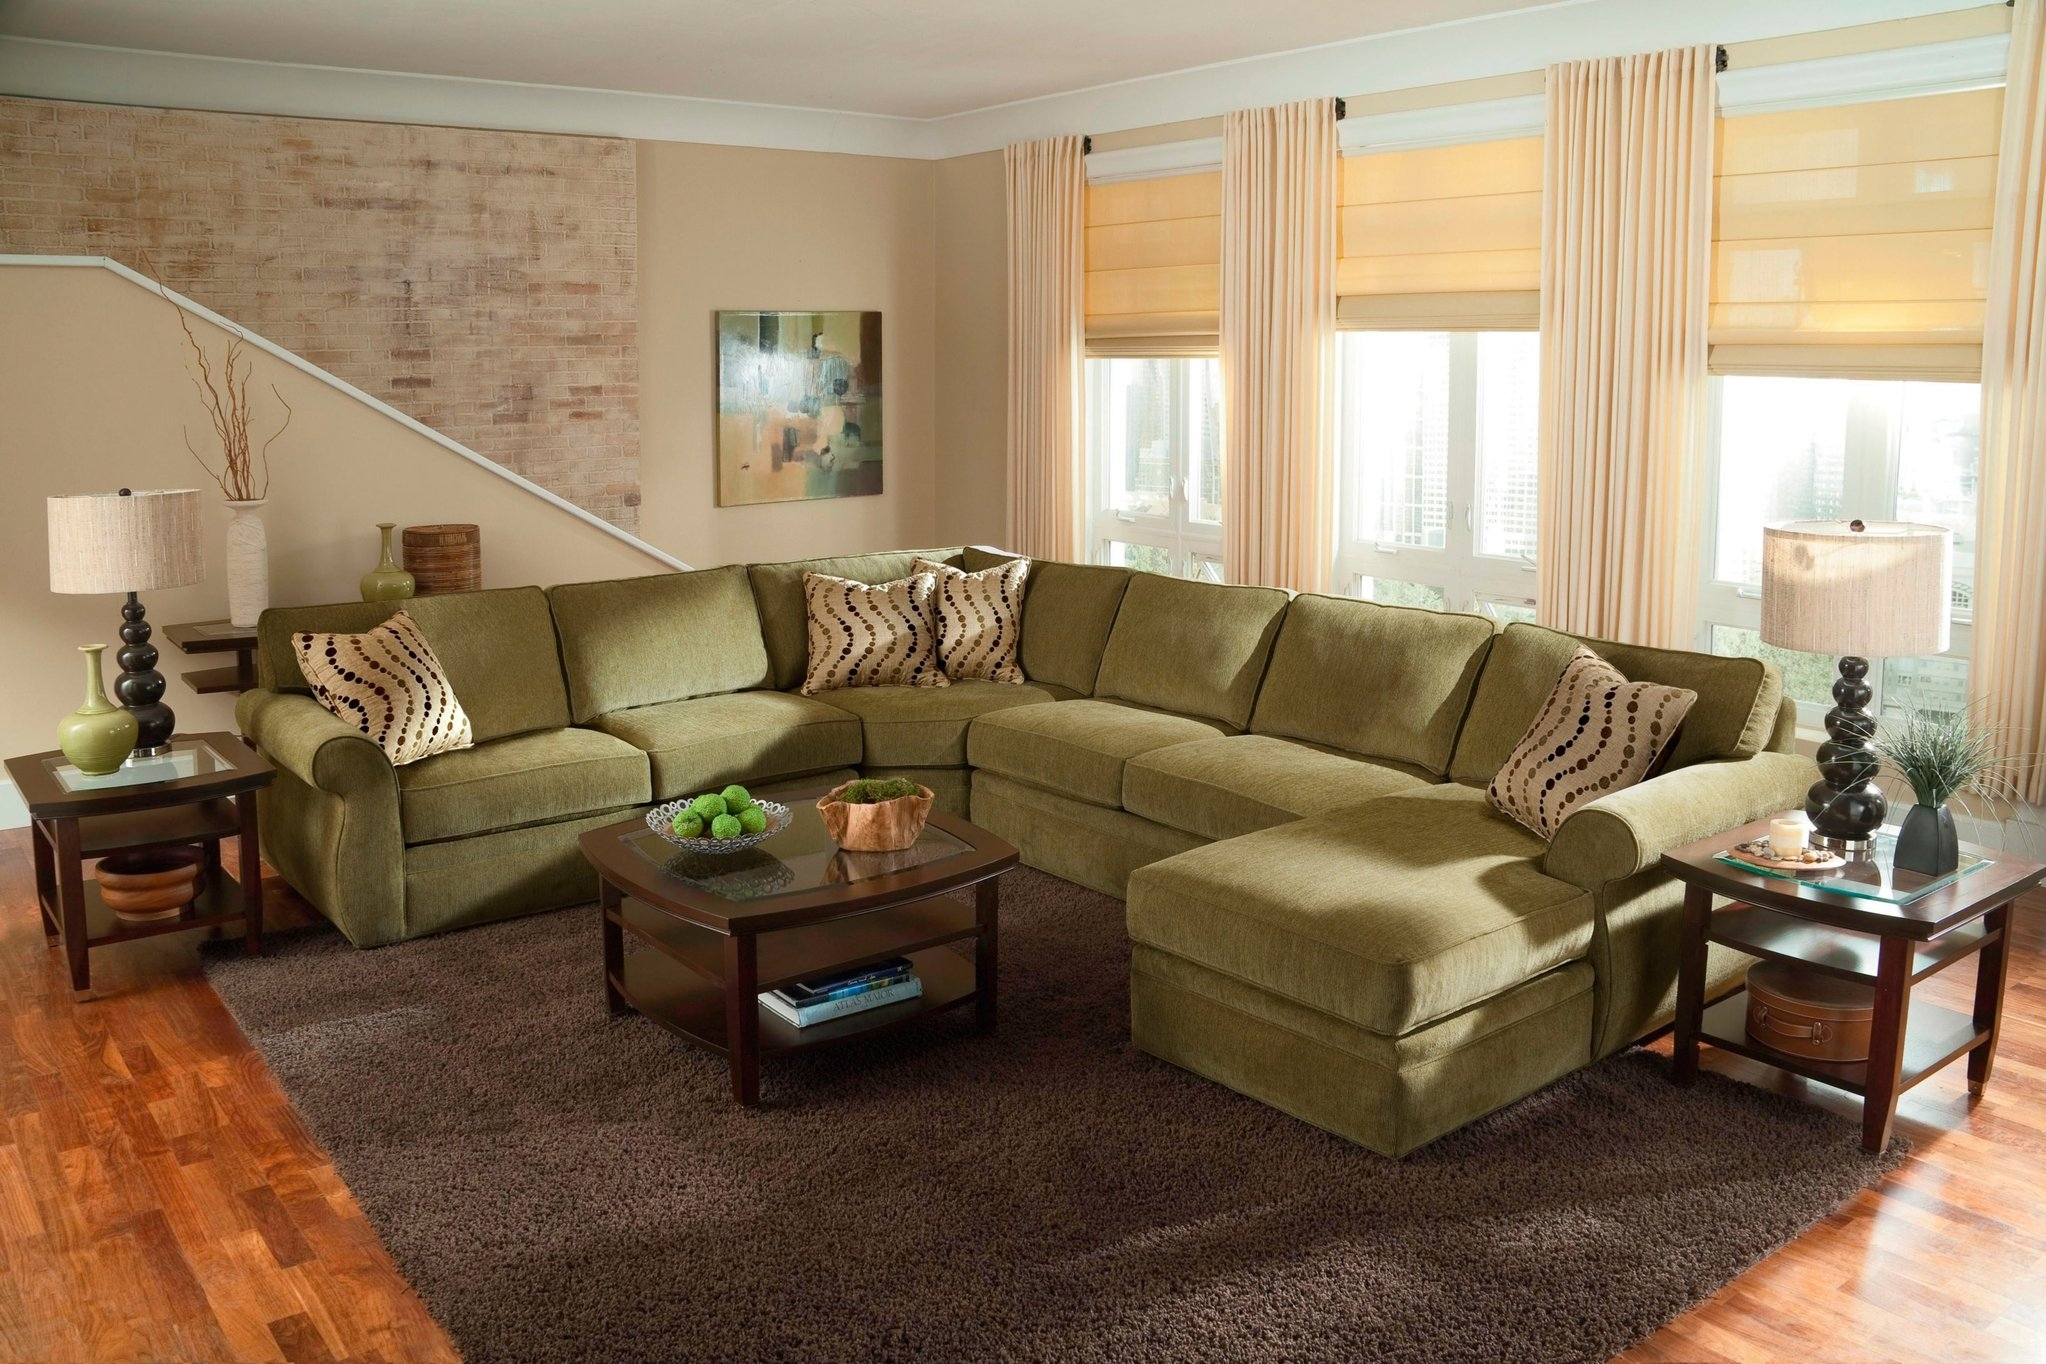 Sectional Sectional Sofas Leather Sectionals Pertaining To Extra Large Sectional Sofas (#11 of 12)